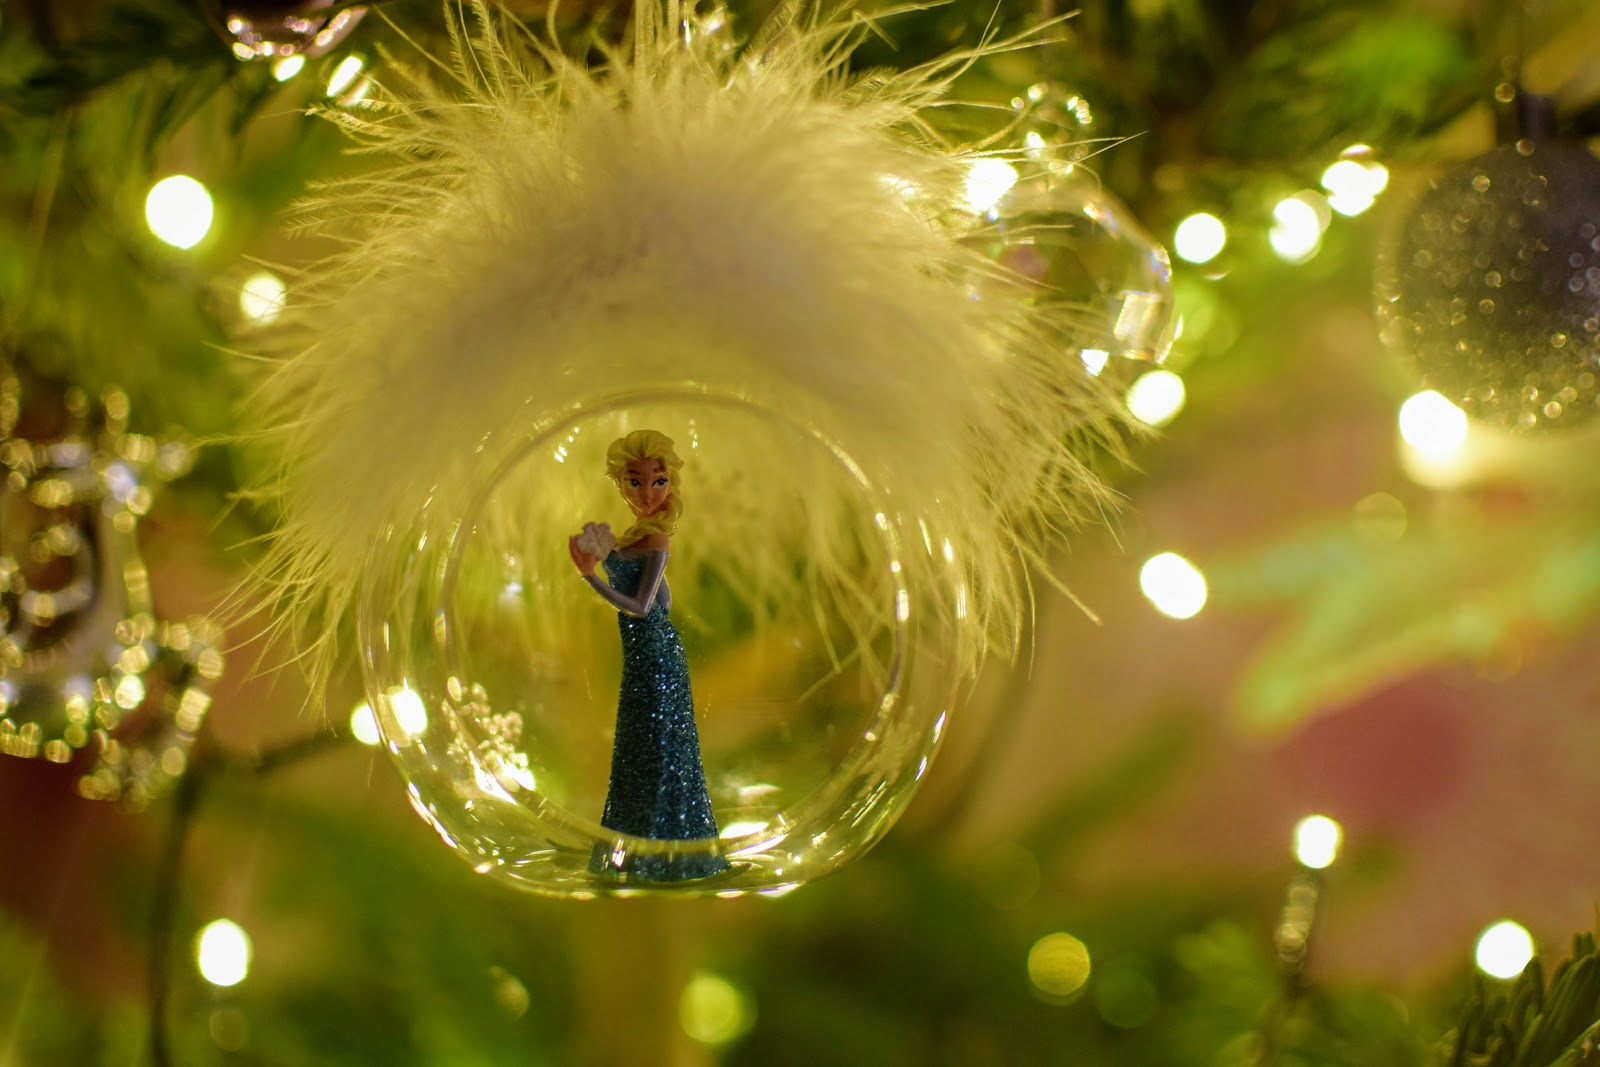 Frozen, Disney, Elsa, Elsa ornament, Disney Christmas, Christmas, Christmas Tree, Pines and Needles, Lifestyle Blogger, Interiors Blogger, Christmas tree Ornaments, ornaments, family, siblings,